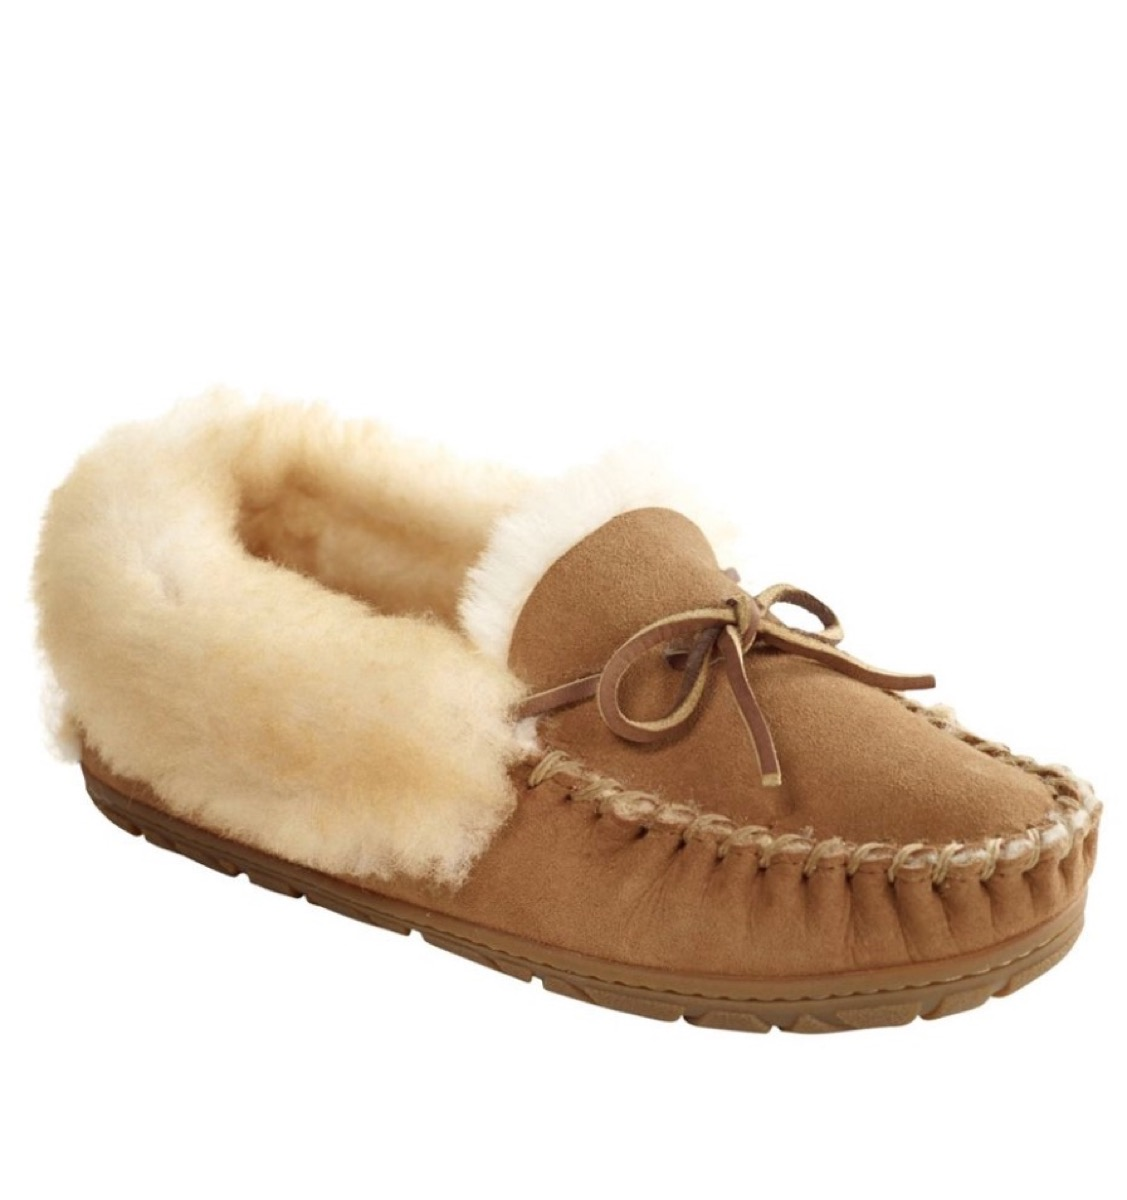 shearling slippers, best gifts for college students